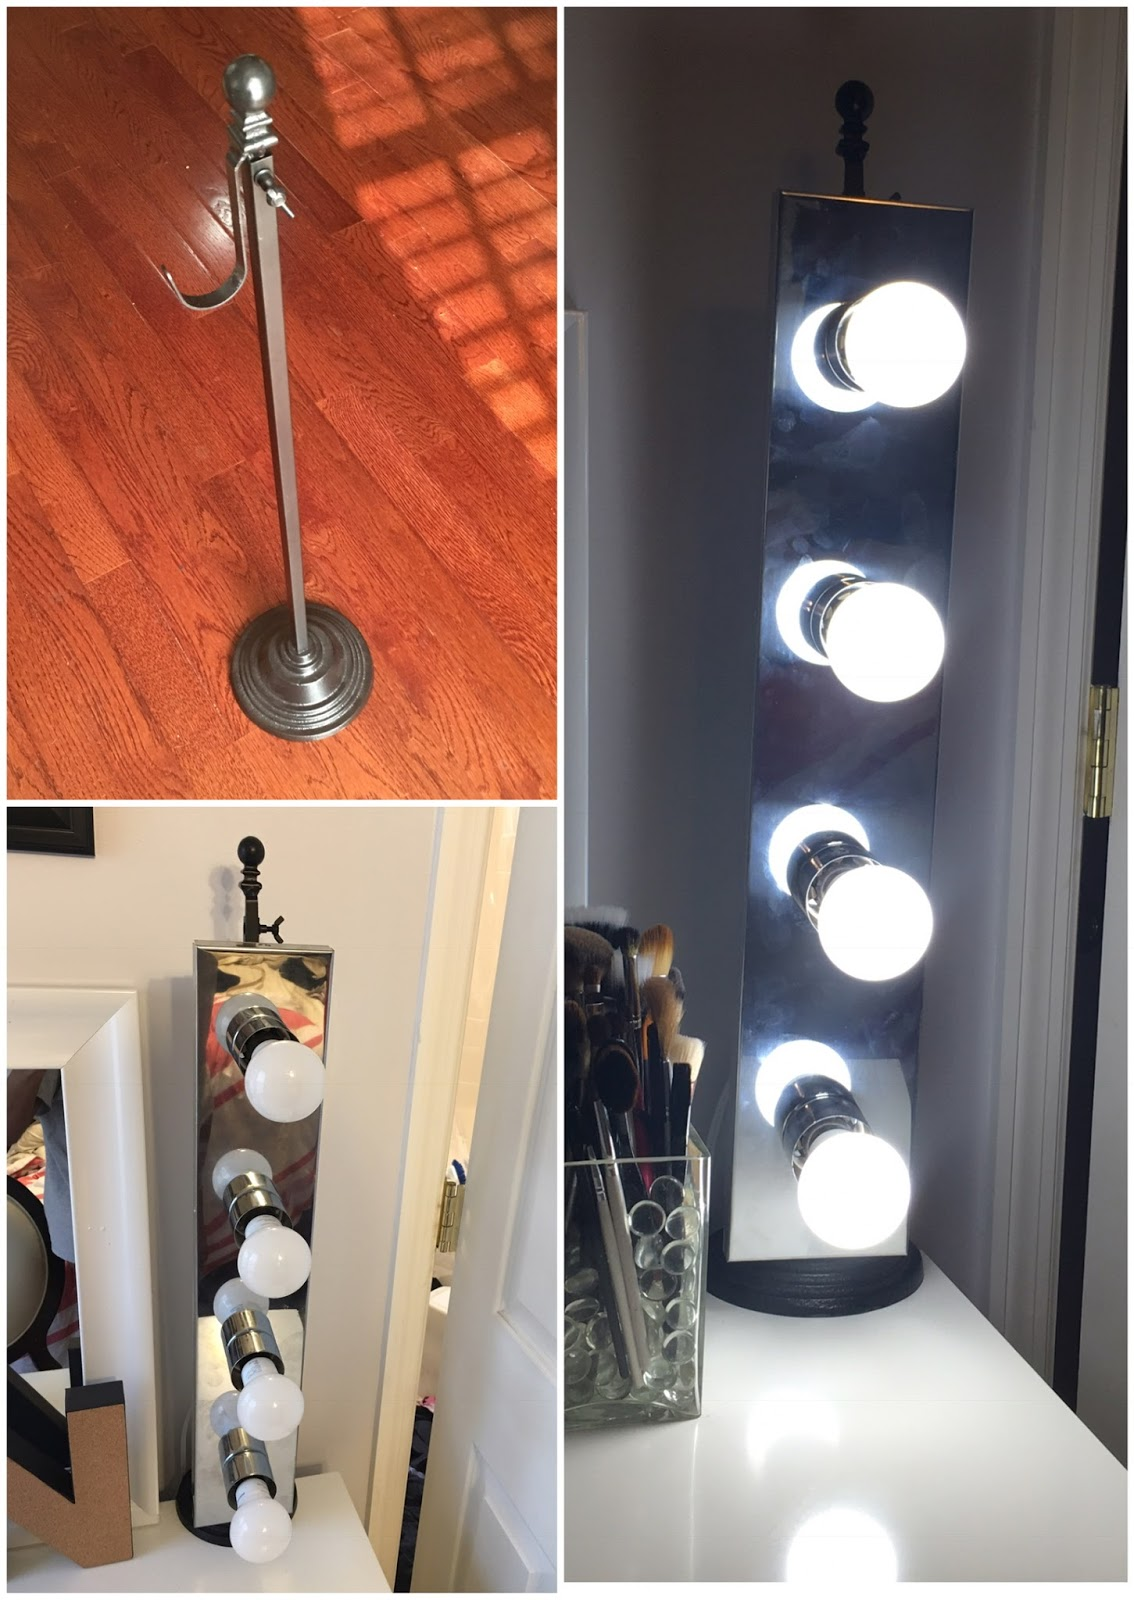 Awesome Iu0027m Currently Working On My Vanity Space And Iu0027m Not Done But I Wanted To  Share My DIY Vanity Light. You Can Find Tutorials On How To Do This All  Over The ...